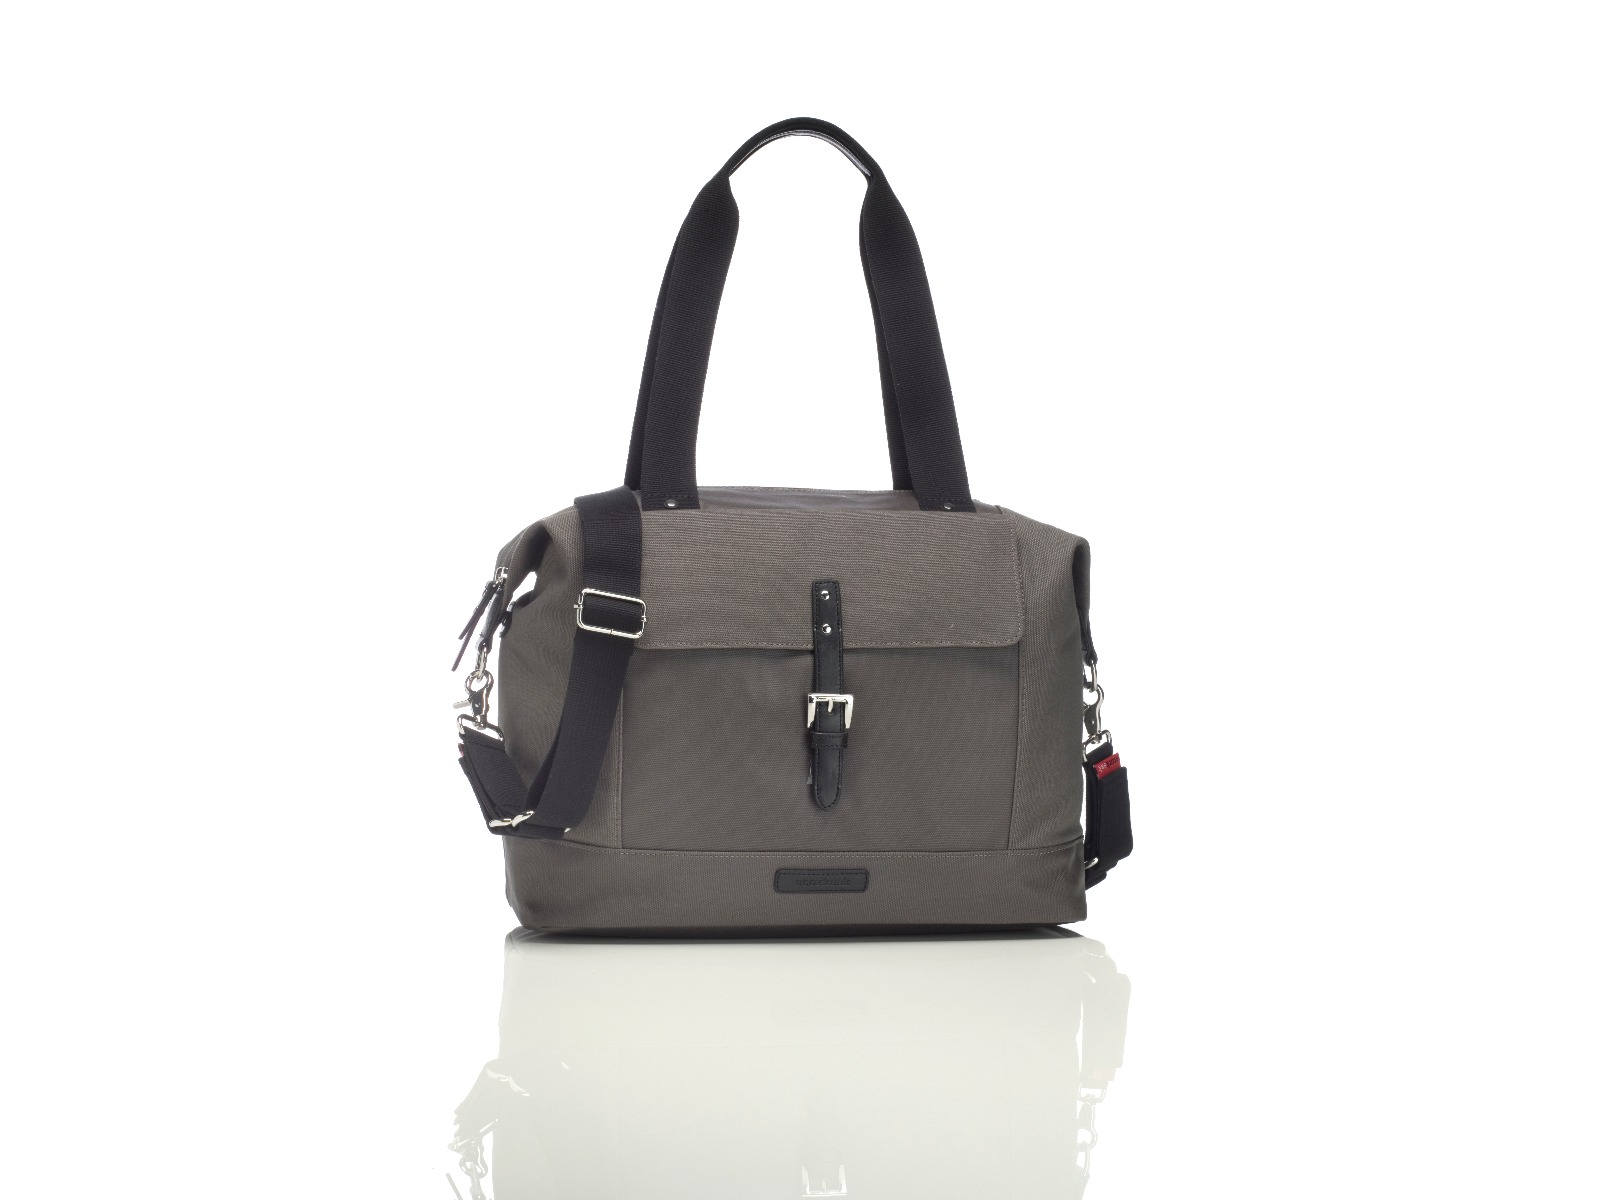 Storksak Jude Convertible Bag Charcoal